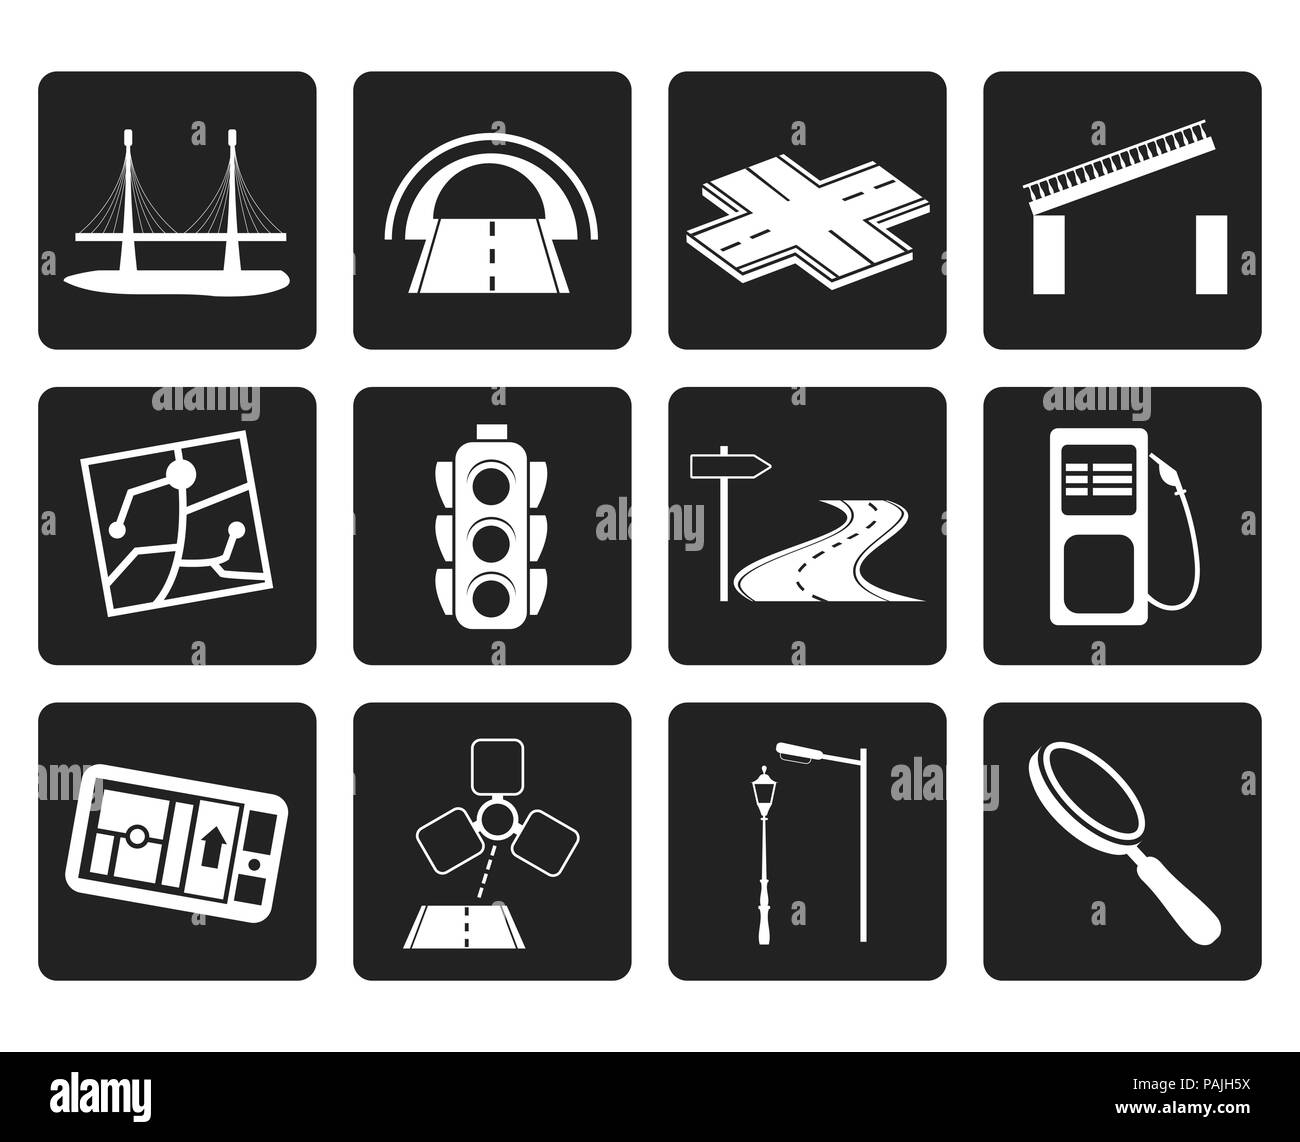 Black Road, navigation and travel icons - vector icon set - Stock Image